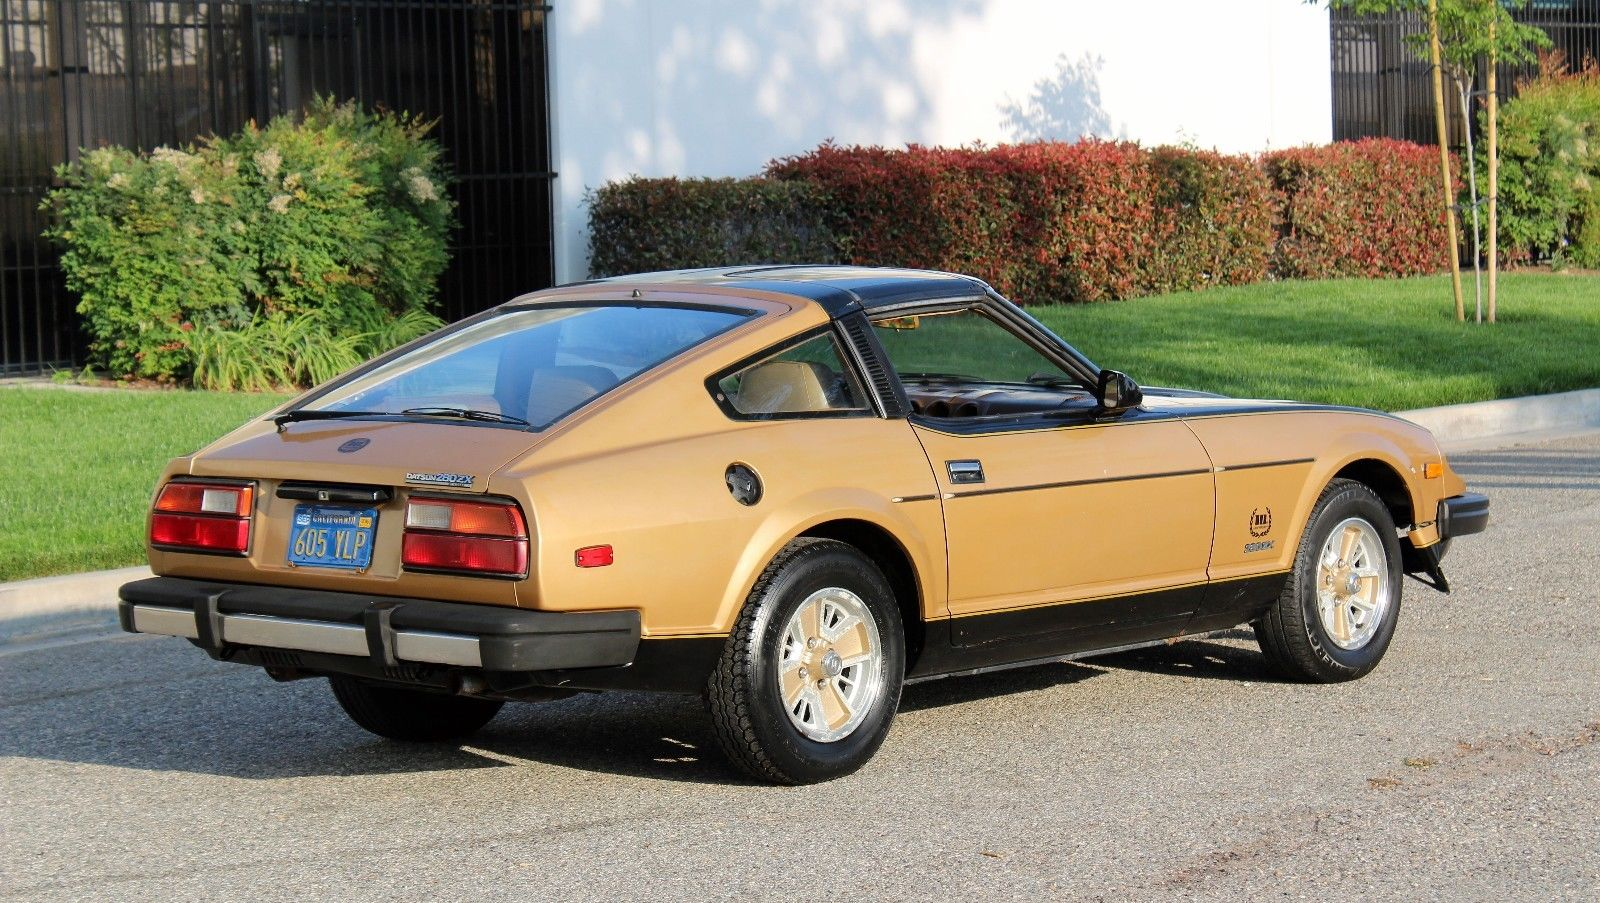 Datsun Nissan 280zx For Sale Zcarguide